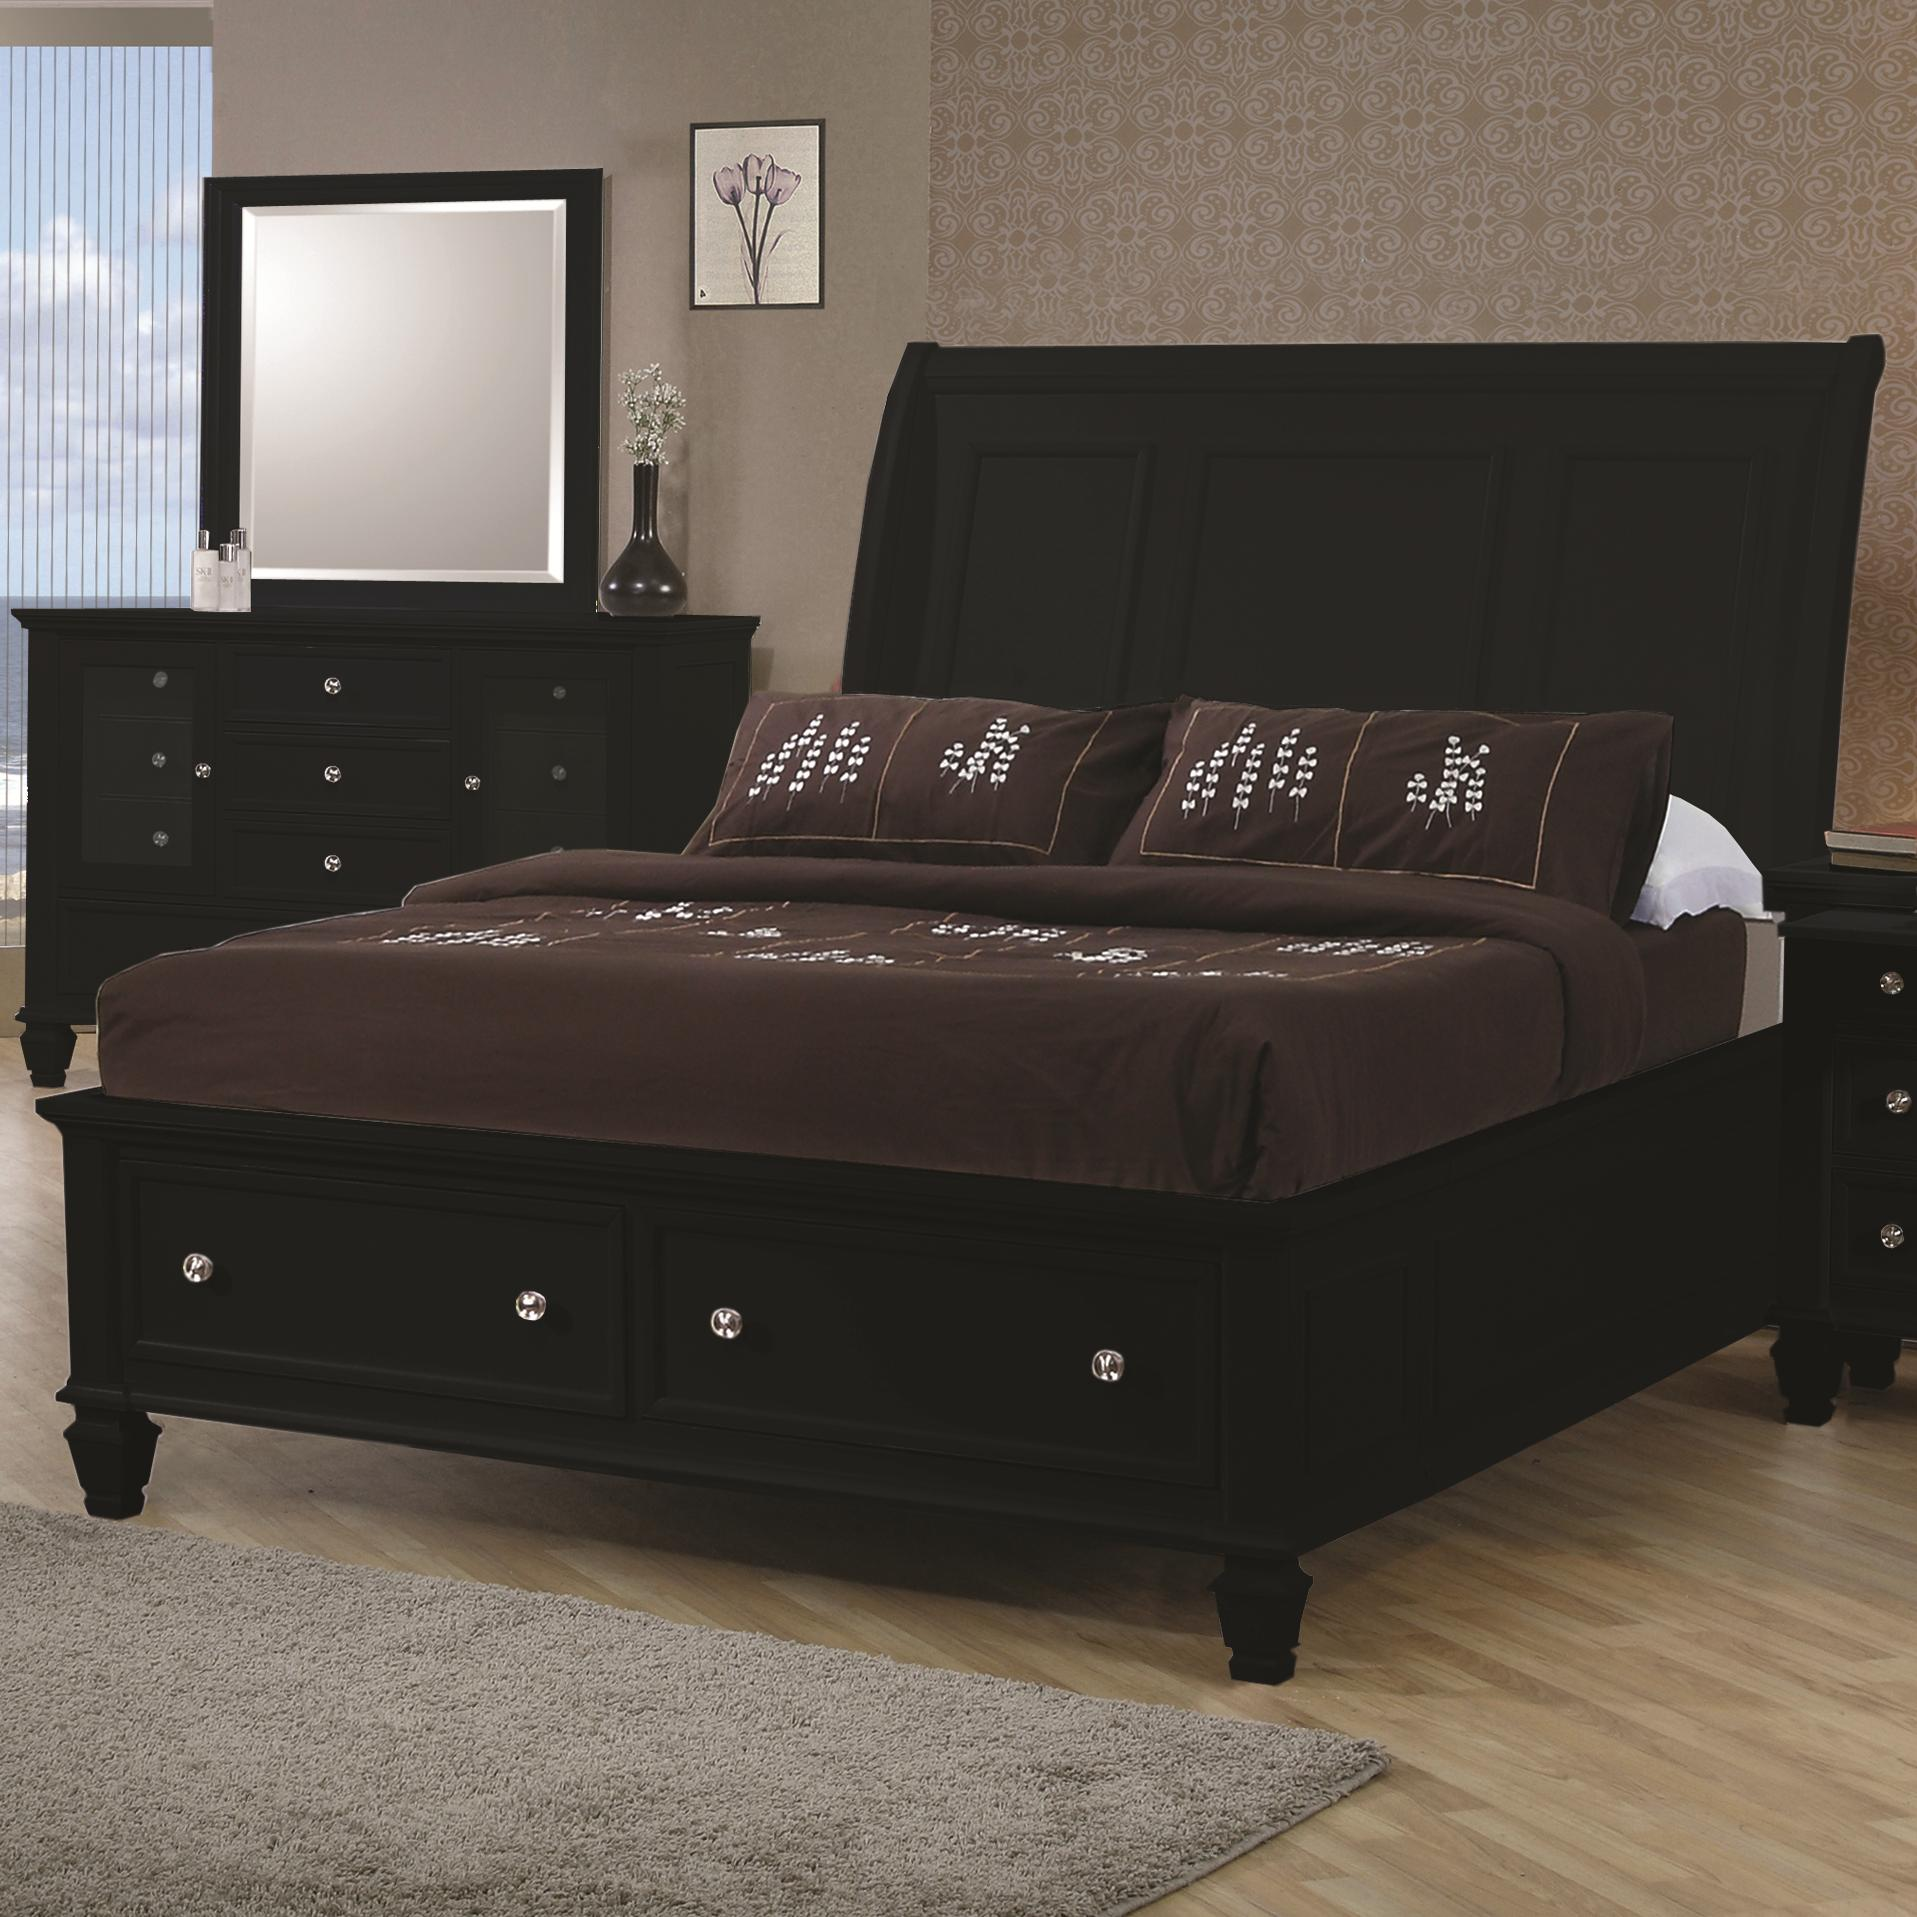 Sandy Beach King Sleigh Bed by Coaster at Rooms for Less